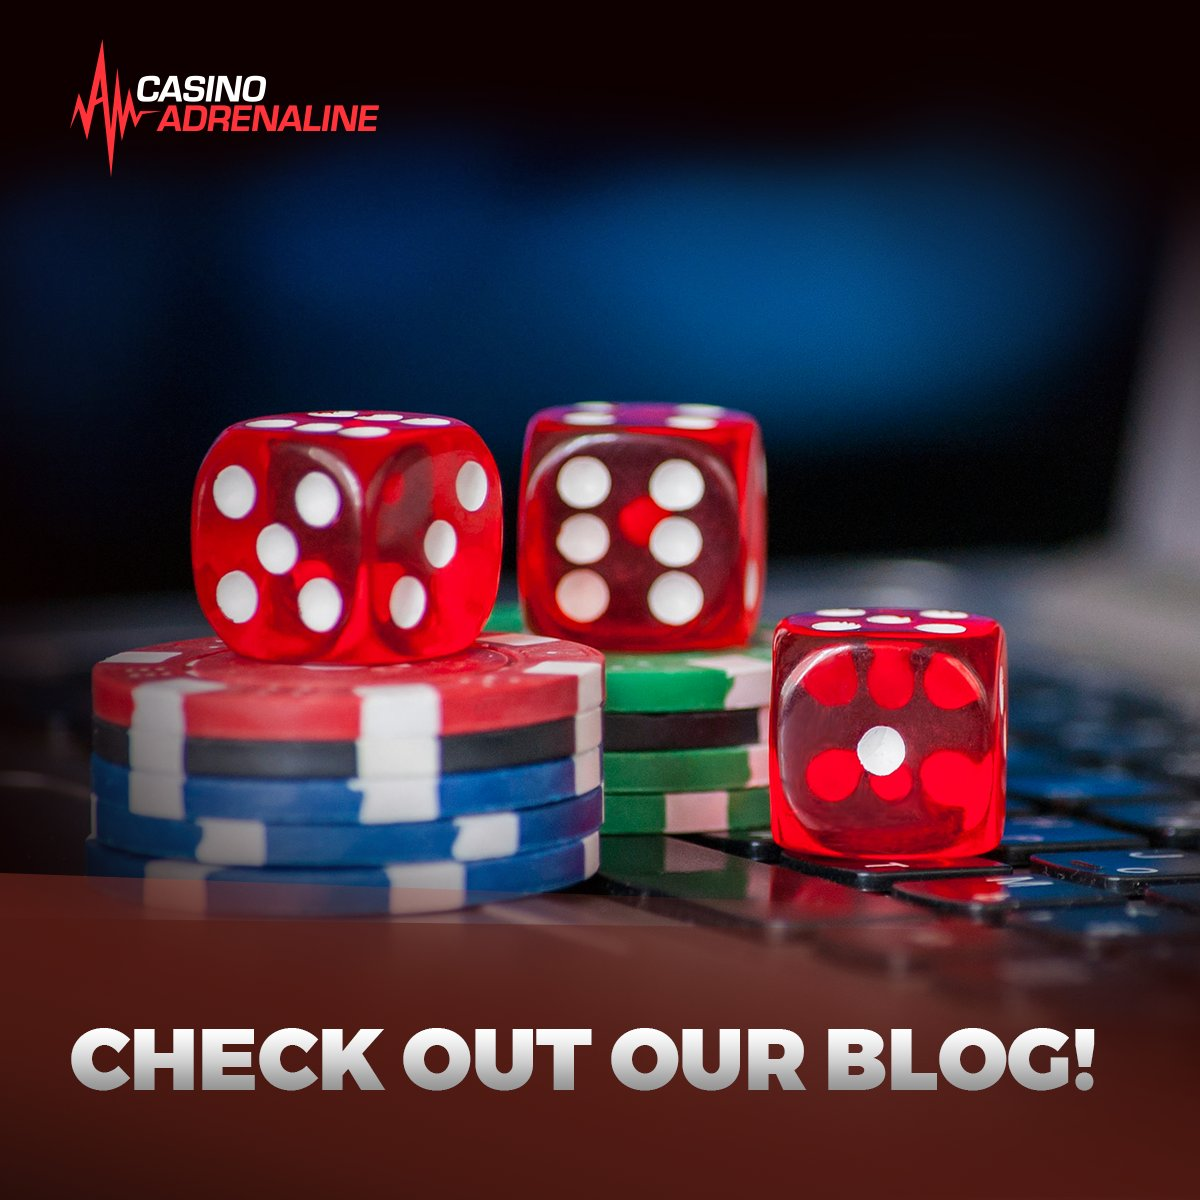 test Twitter Media - Find out about latest new games and innovations in the game industry. Check out our #Blog! 😁 #CasinoAdrenaline  Check it out: https://t.co/VjkPpPlSbI https://t.co/rcDGTxJiKW